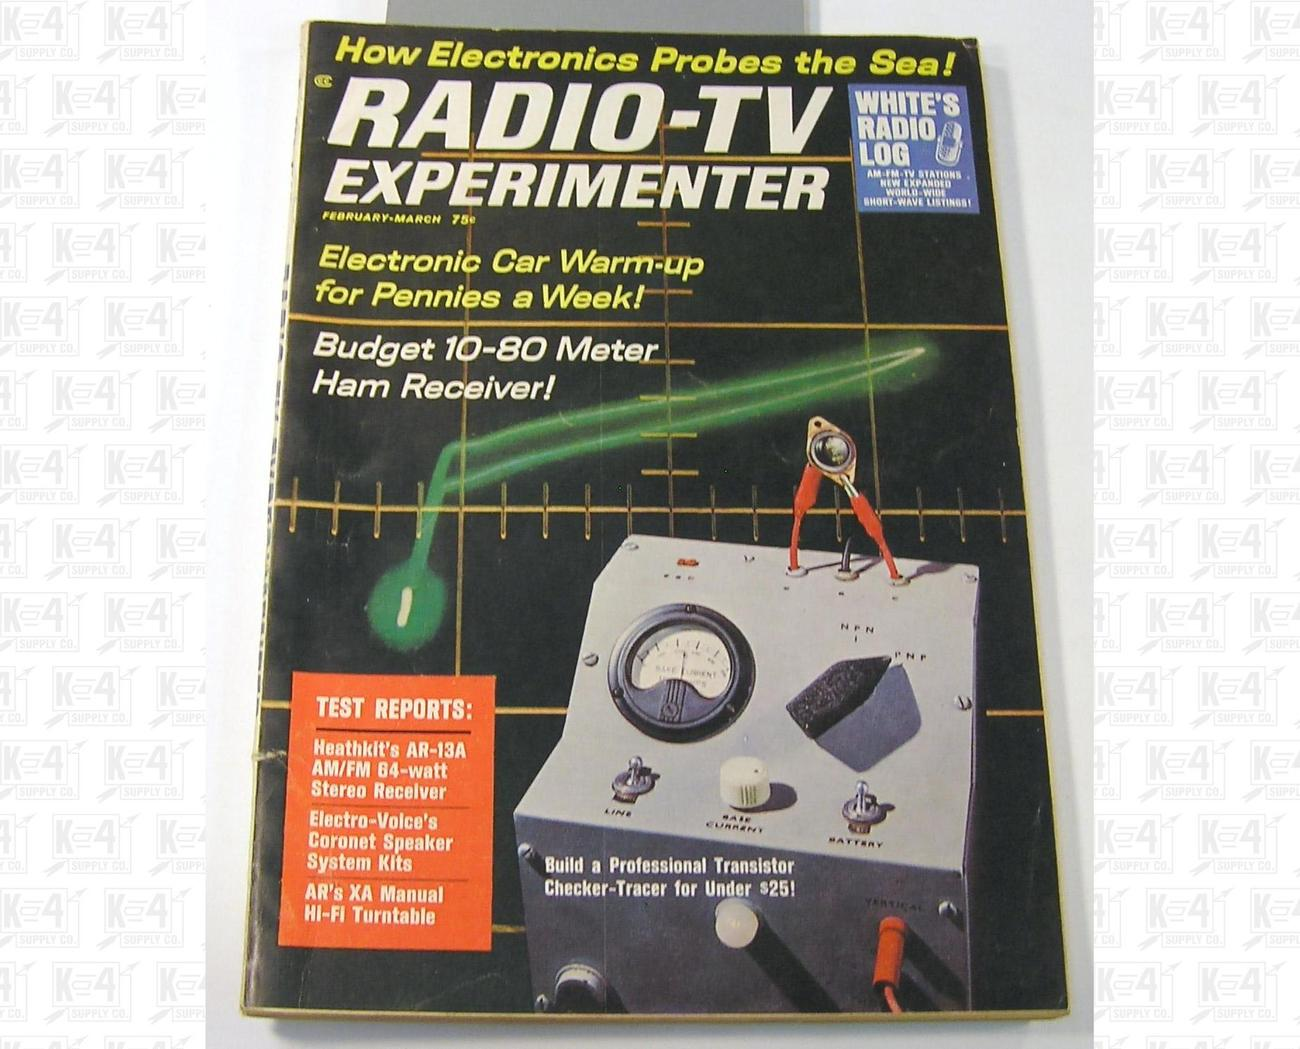 Radio-TV Experimenter Magazine Issue Feb-March 1965